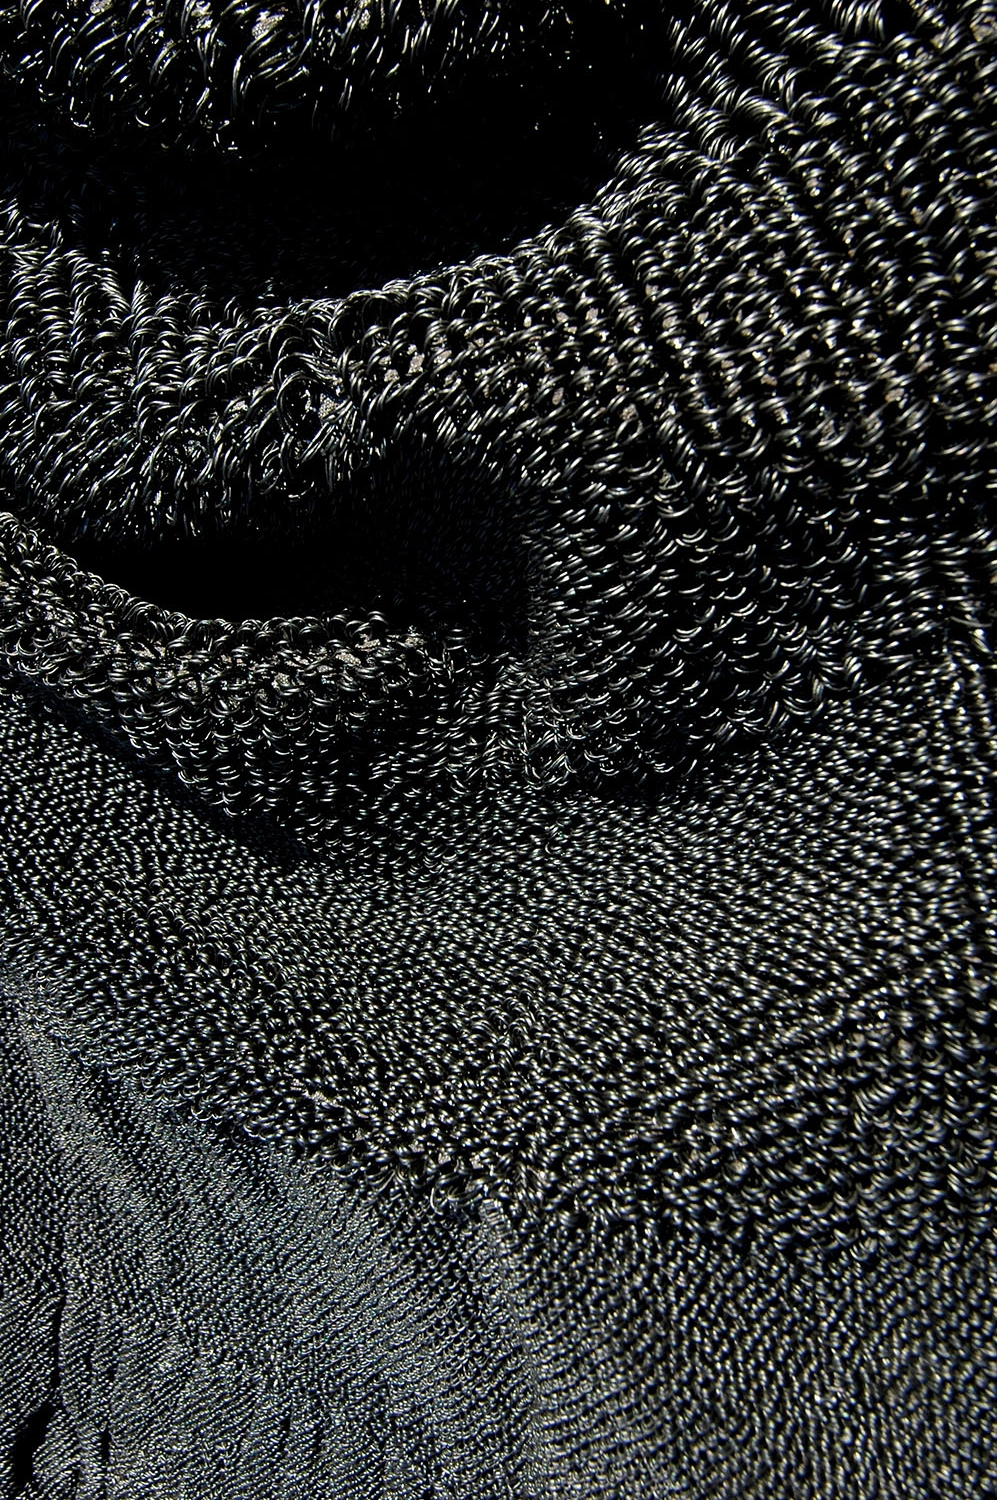 Interflow - Research of the material proportions of various yarns and the textural effect of variations between small and large loops.